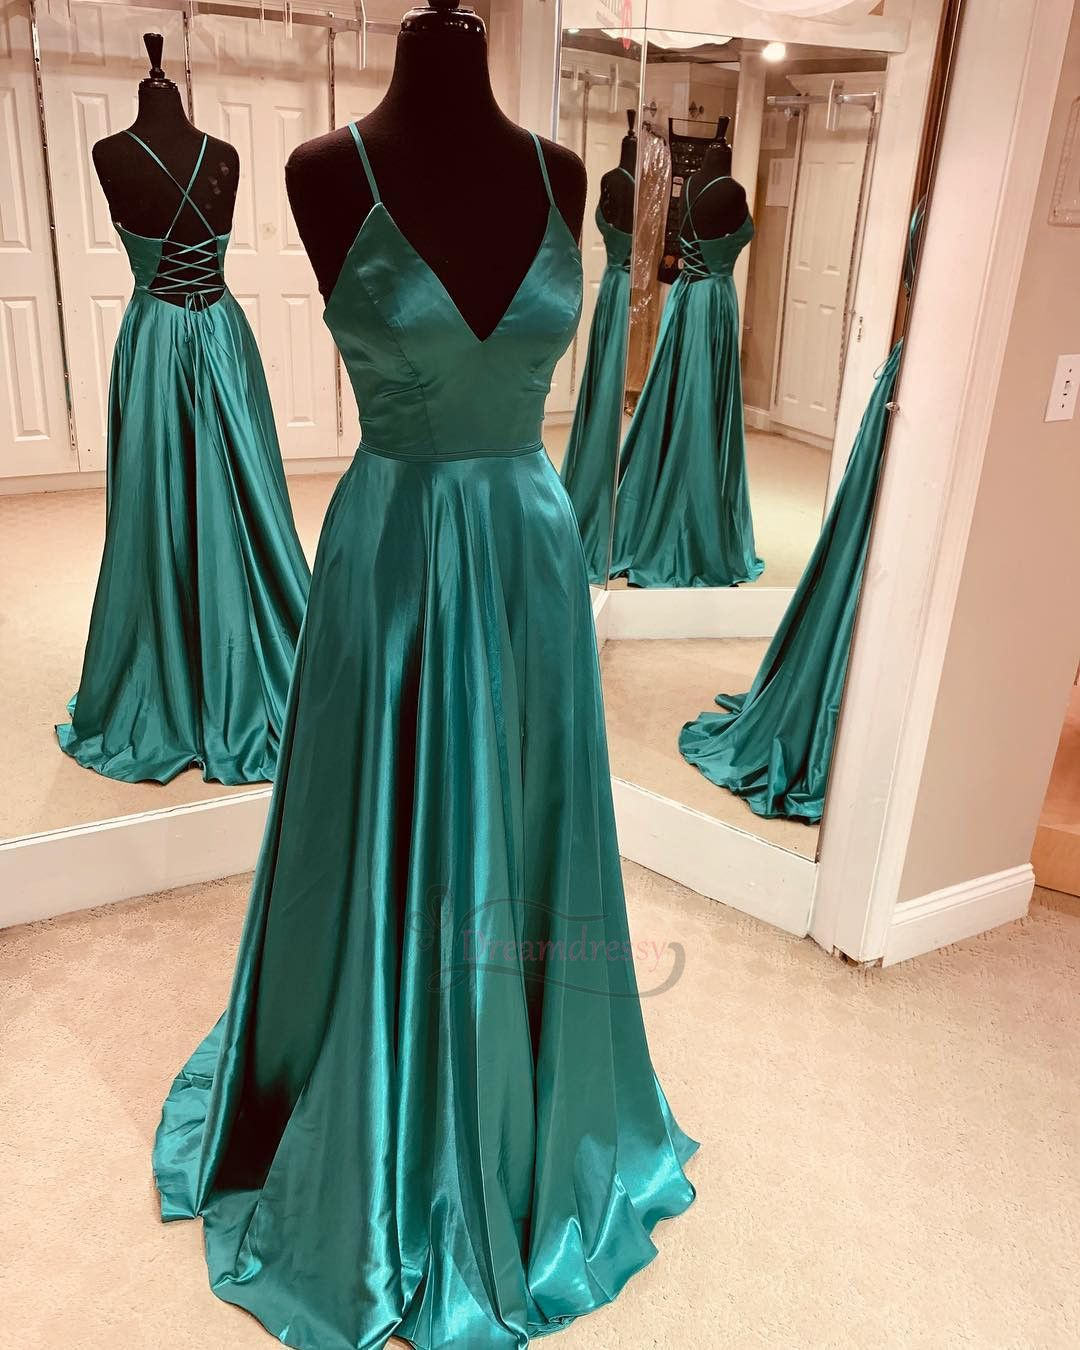 Simple Green Long Prom Dress With Lace Up Back Teal Prom Dresses Long Lace Up Back Dress Cute Prom Dresses [ 1350 x 1080 Pixel ]